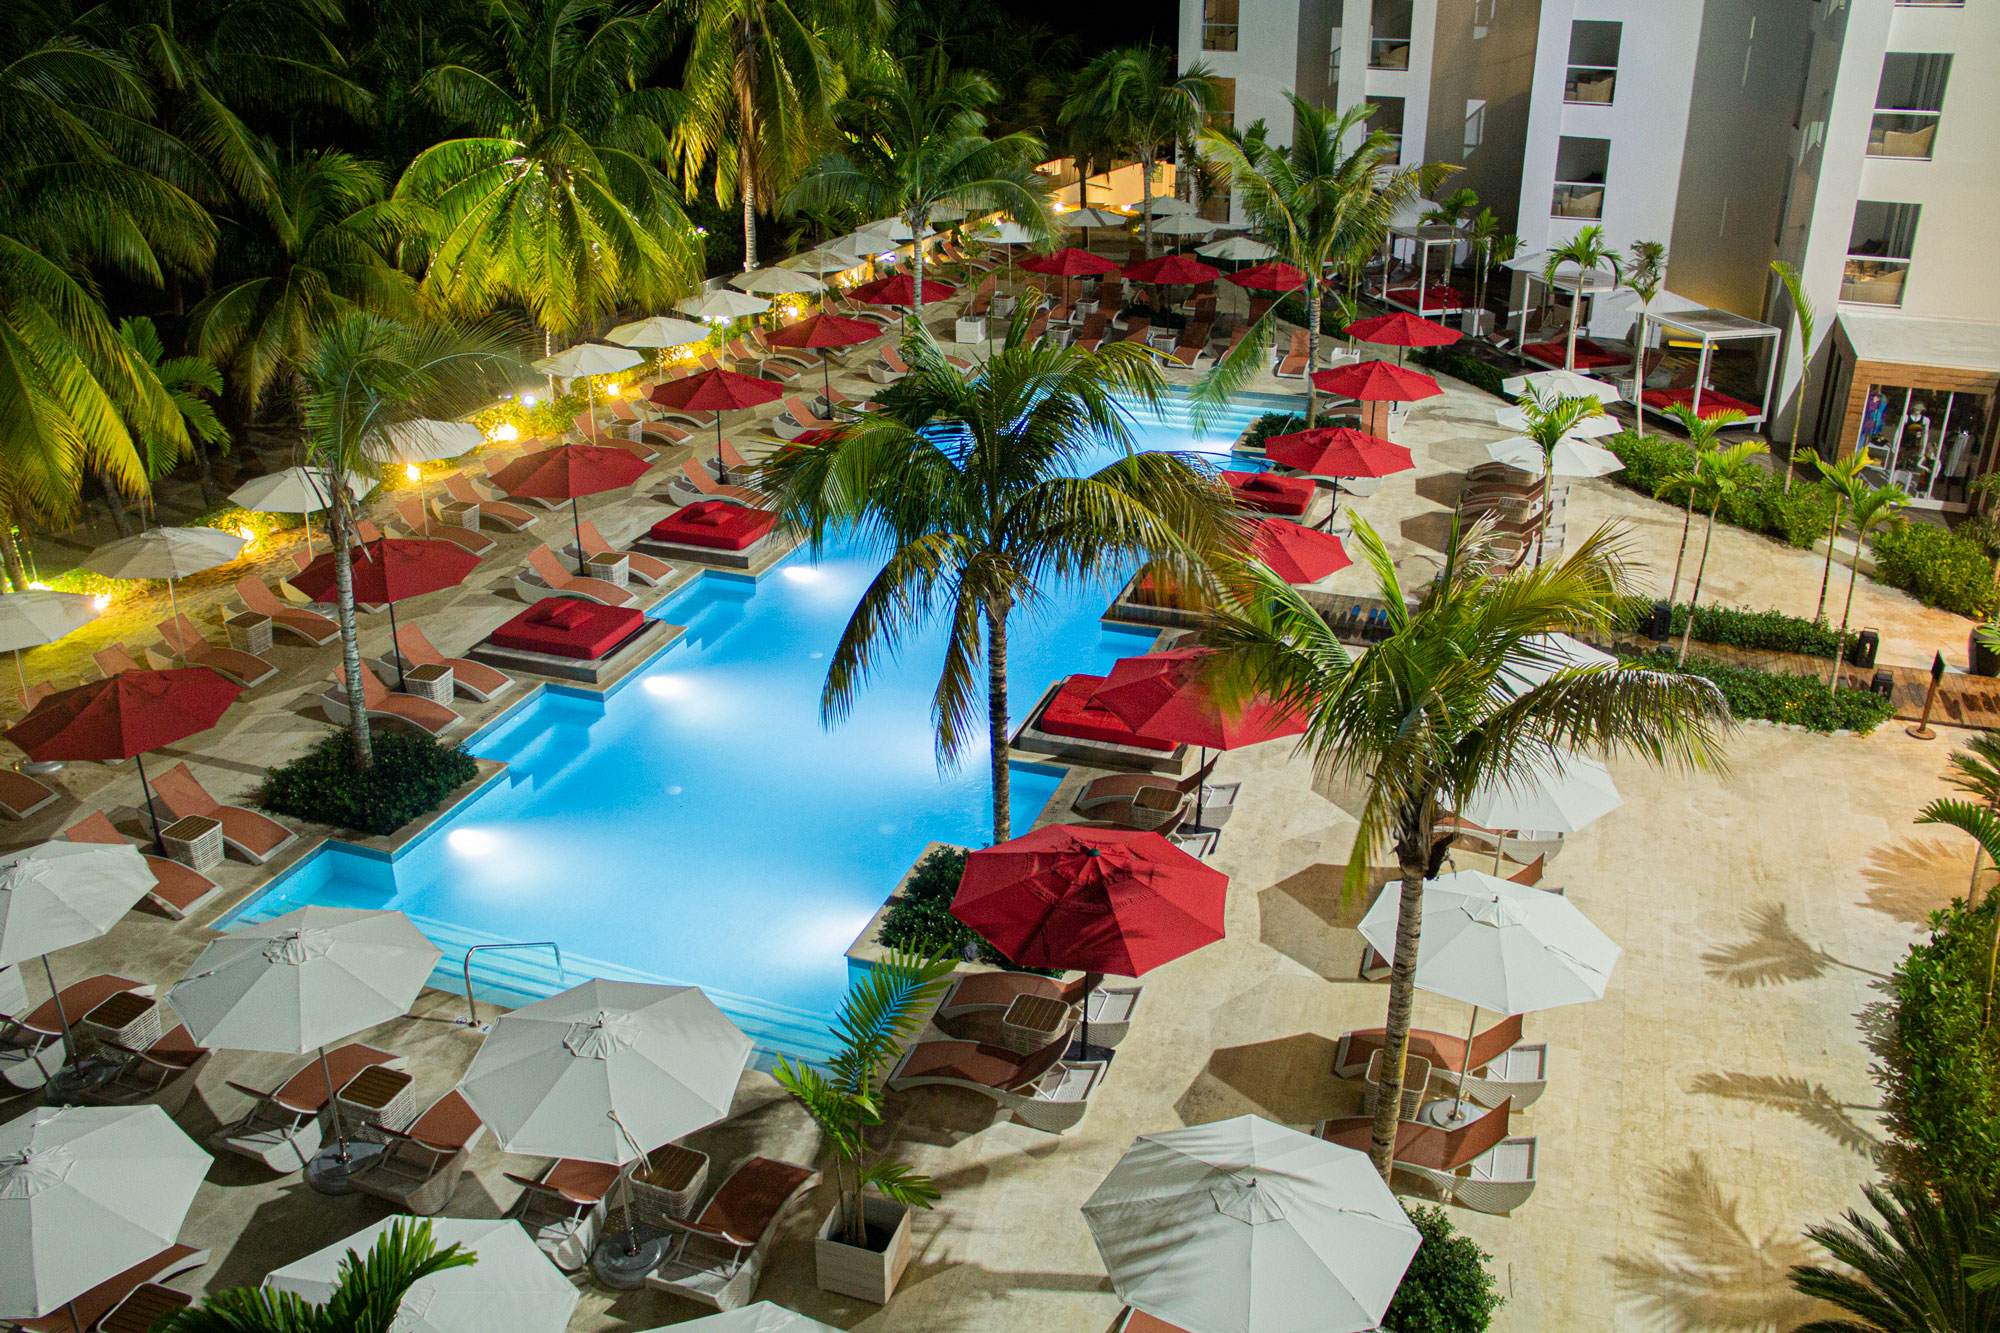 Spanish Court Jamaica  - Natural Stone Caliza Alba Hotel Jamaica S Pool1 59